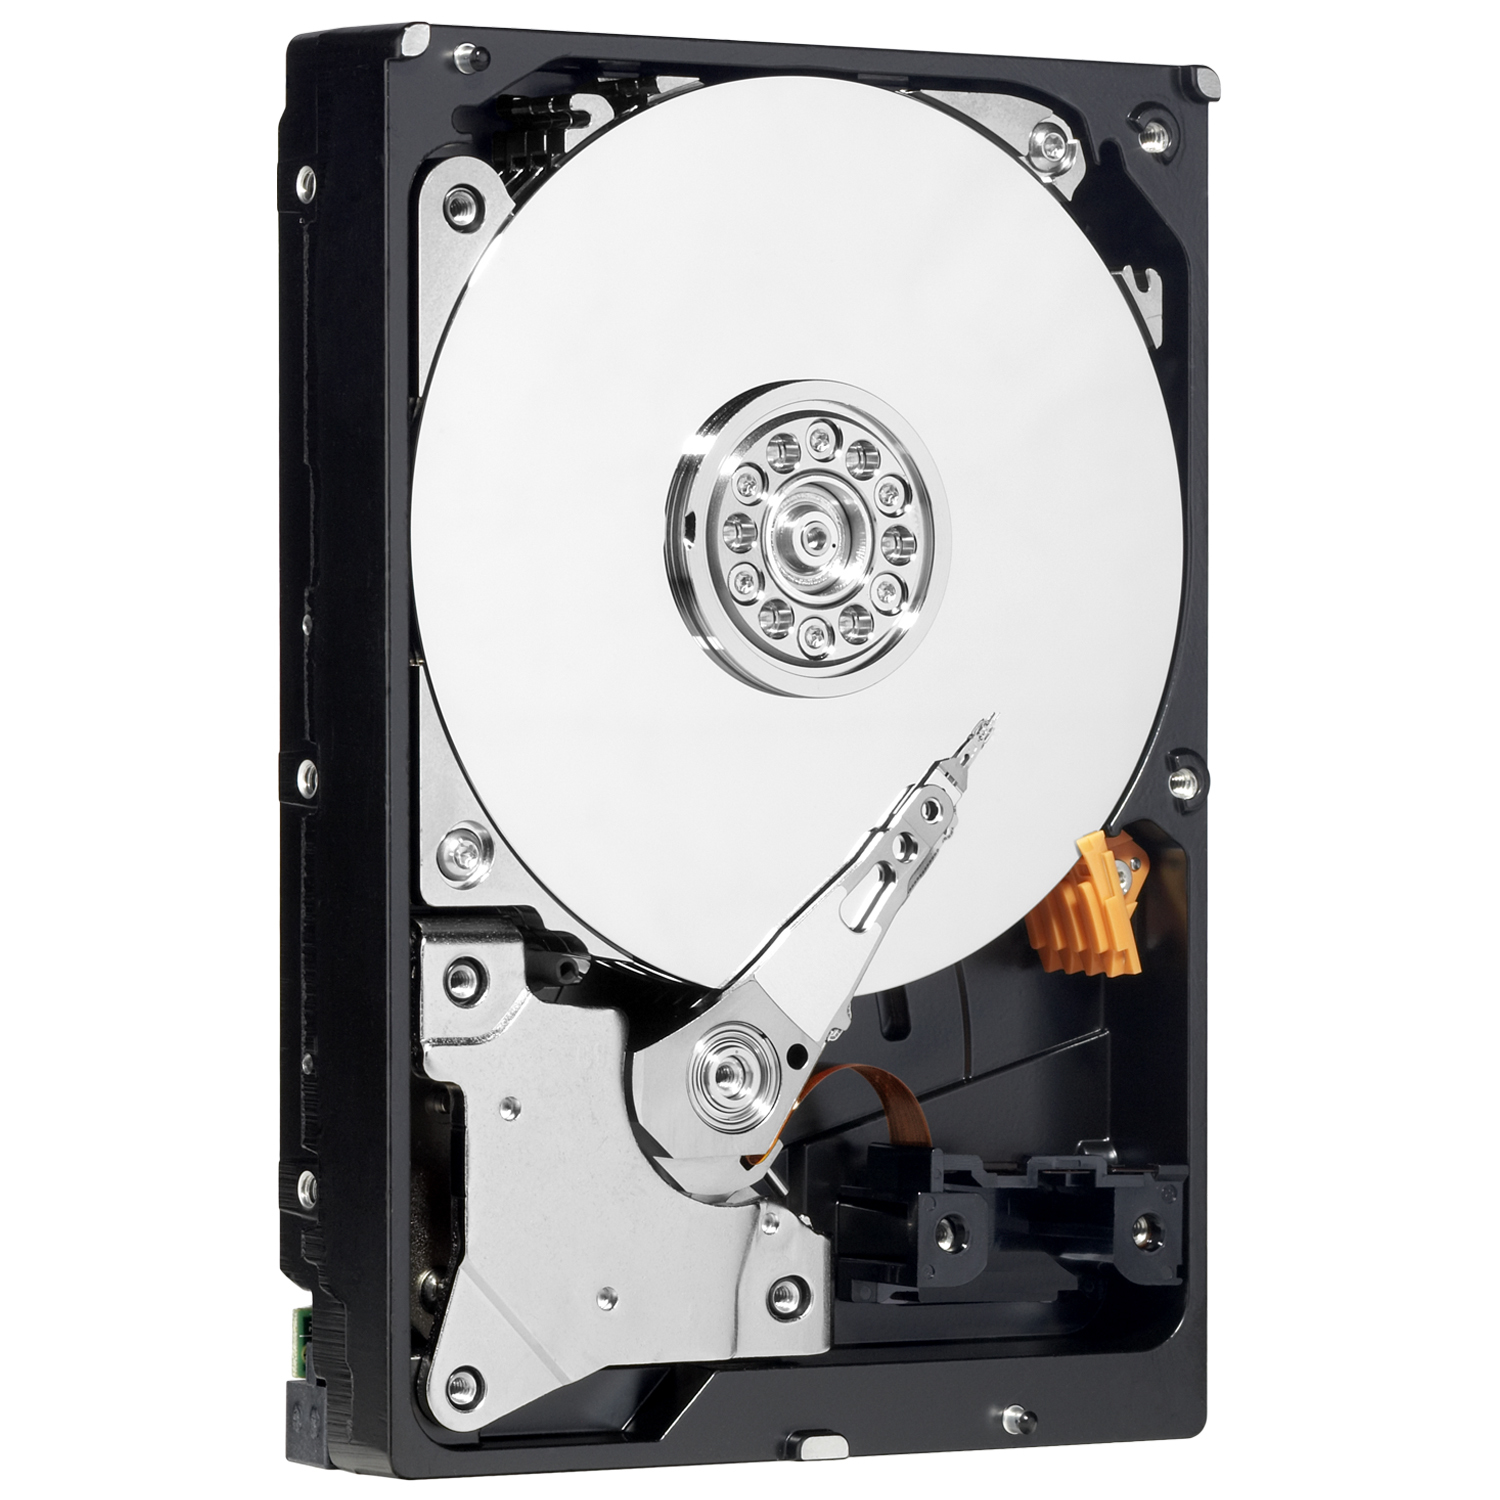 WESTERN DIGITAL AV HDD 4000GB SERIAL ATA III INTERNAL HARD DRIVE